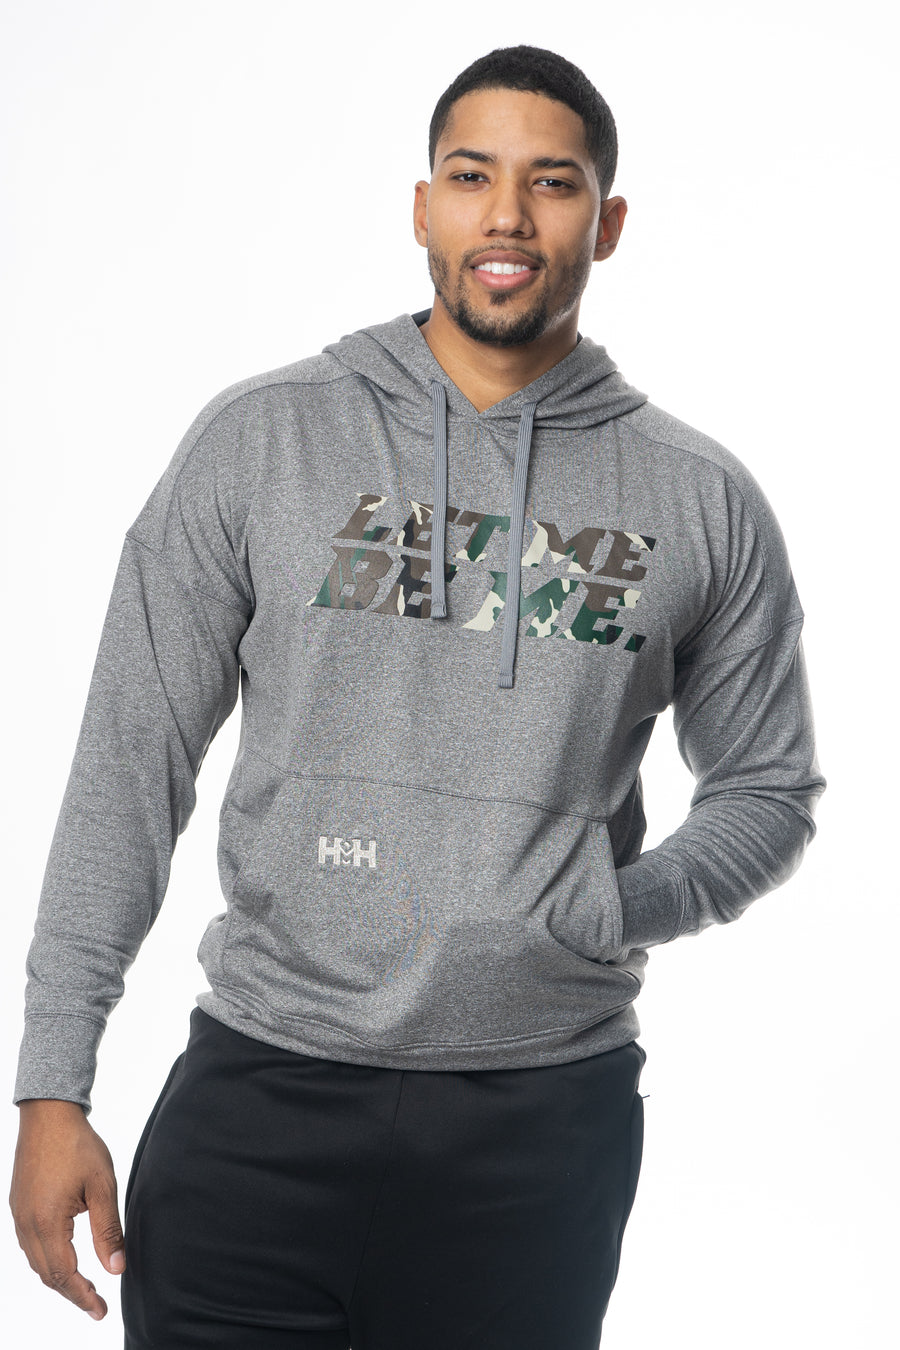 HDMH Unisex Performance Hoodie - Let Me Be Me.